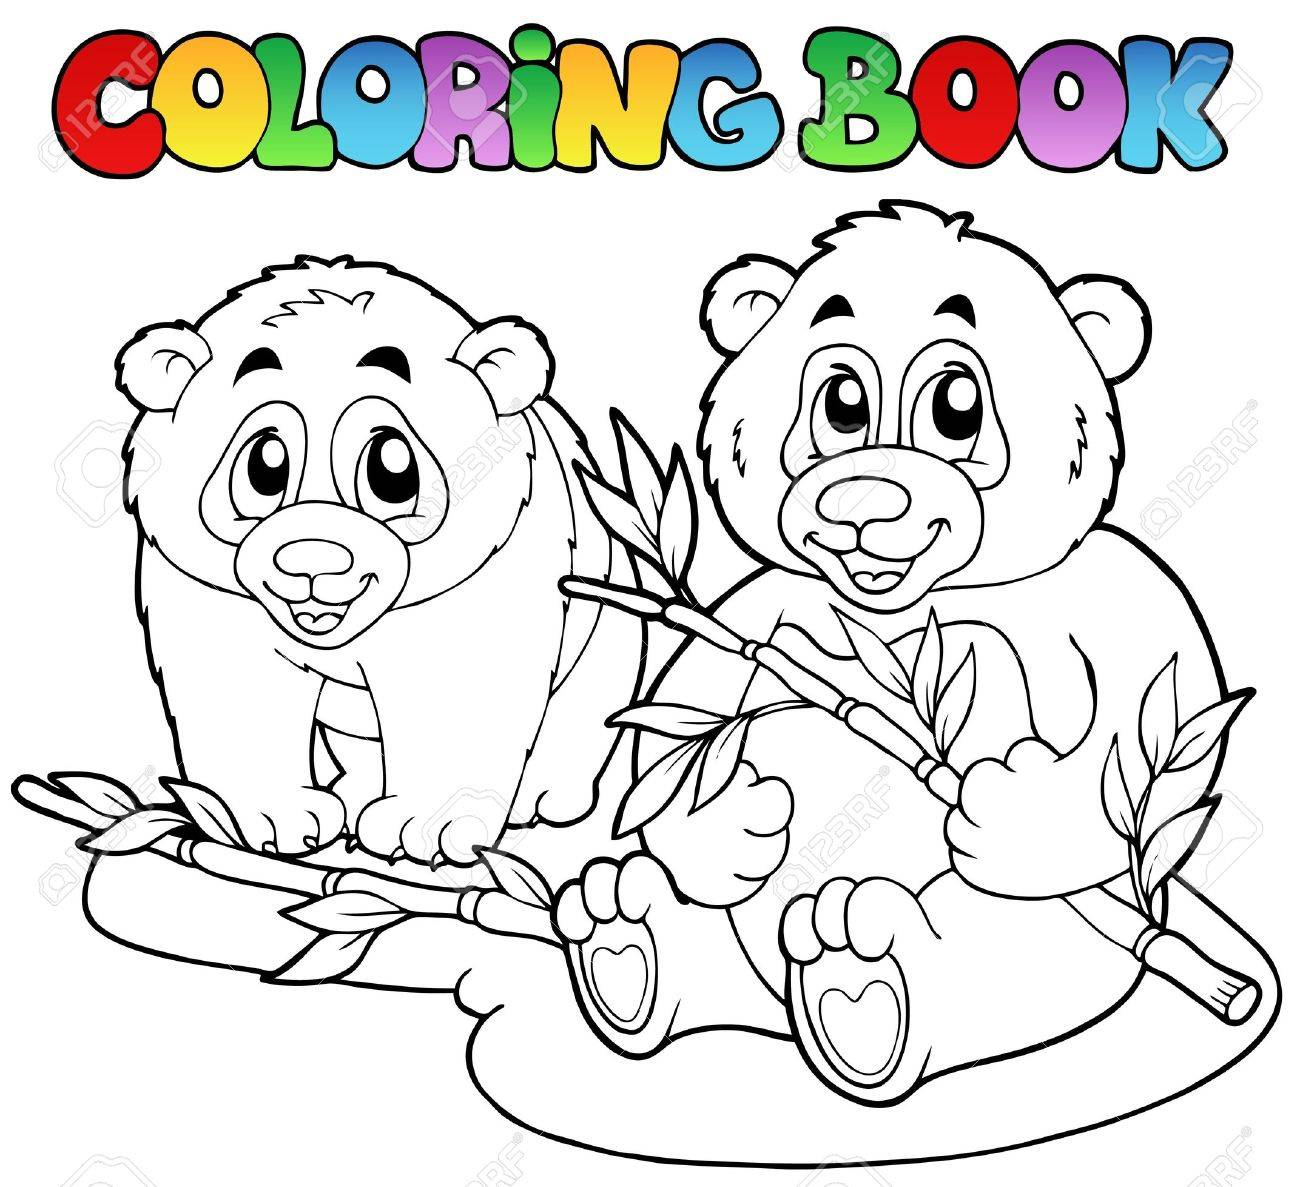 The zoology coloring book - Coloring Book With Two Pandas Vector Illustration Stock Vector 9439550